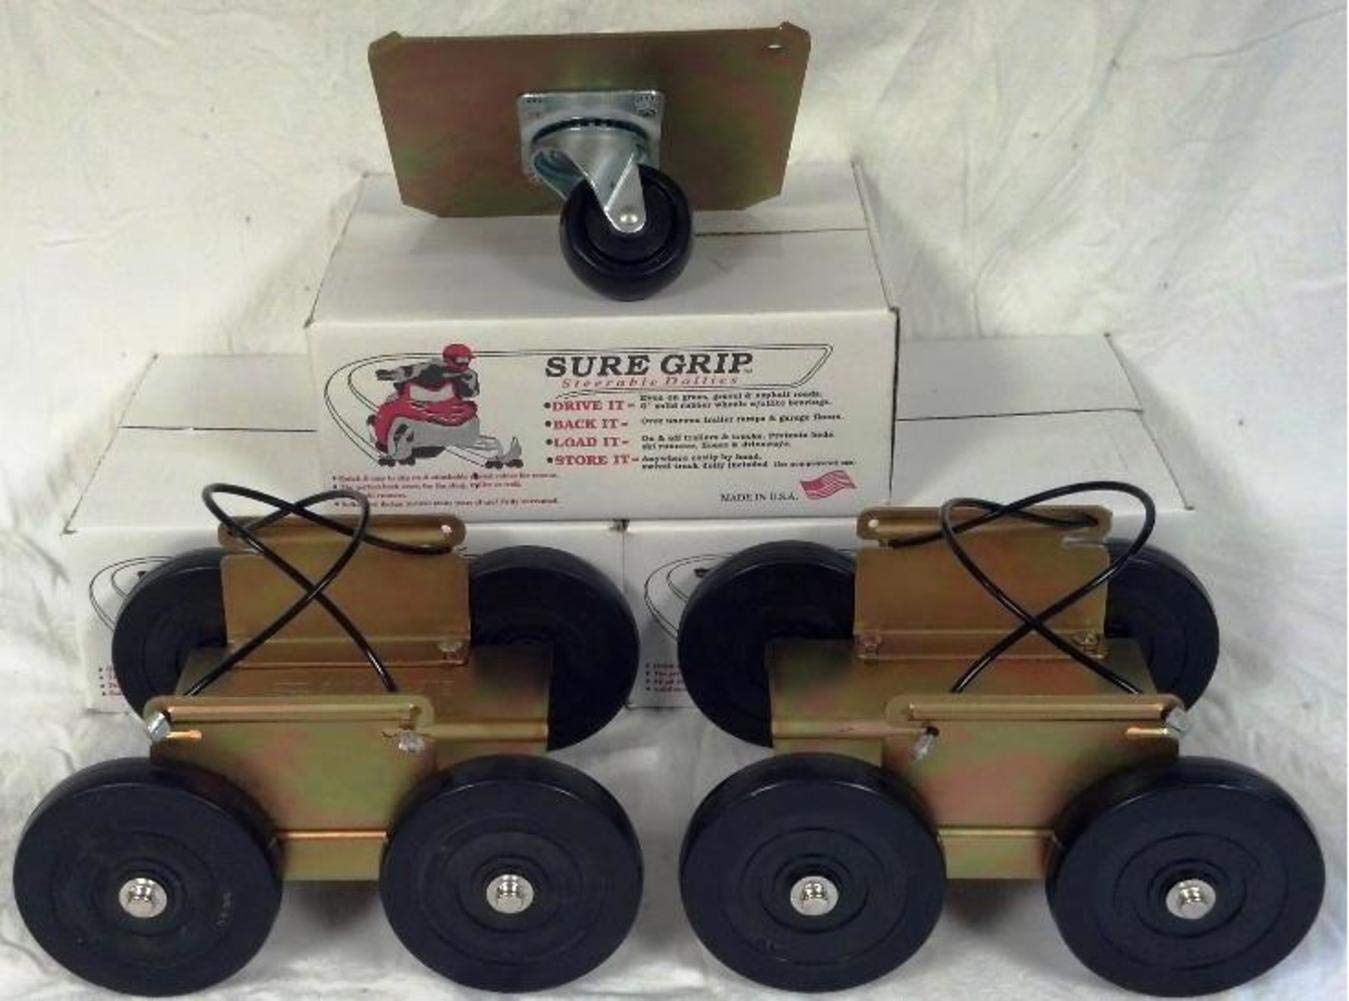 Sure Grip Dollies Drivable Dolly - 3 Piece Long Set PS-6112 CECOMINOD015123